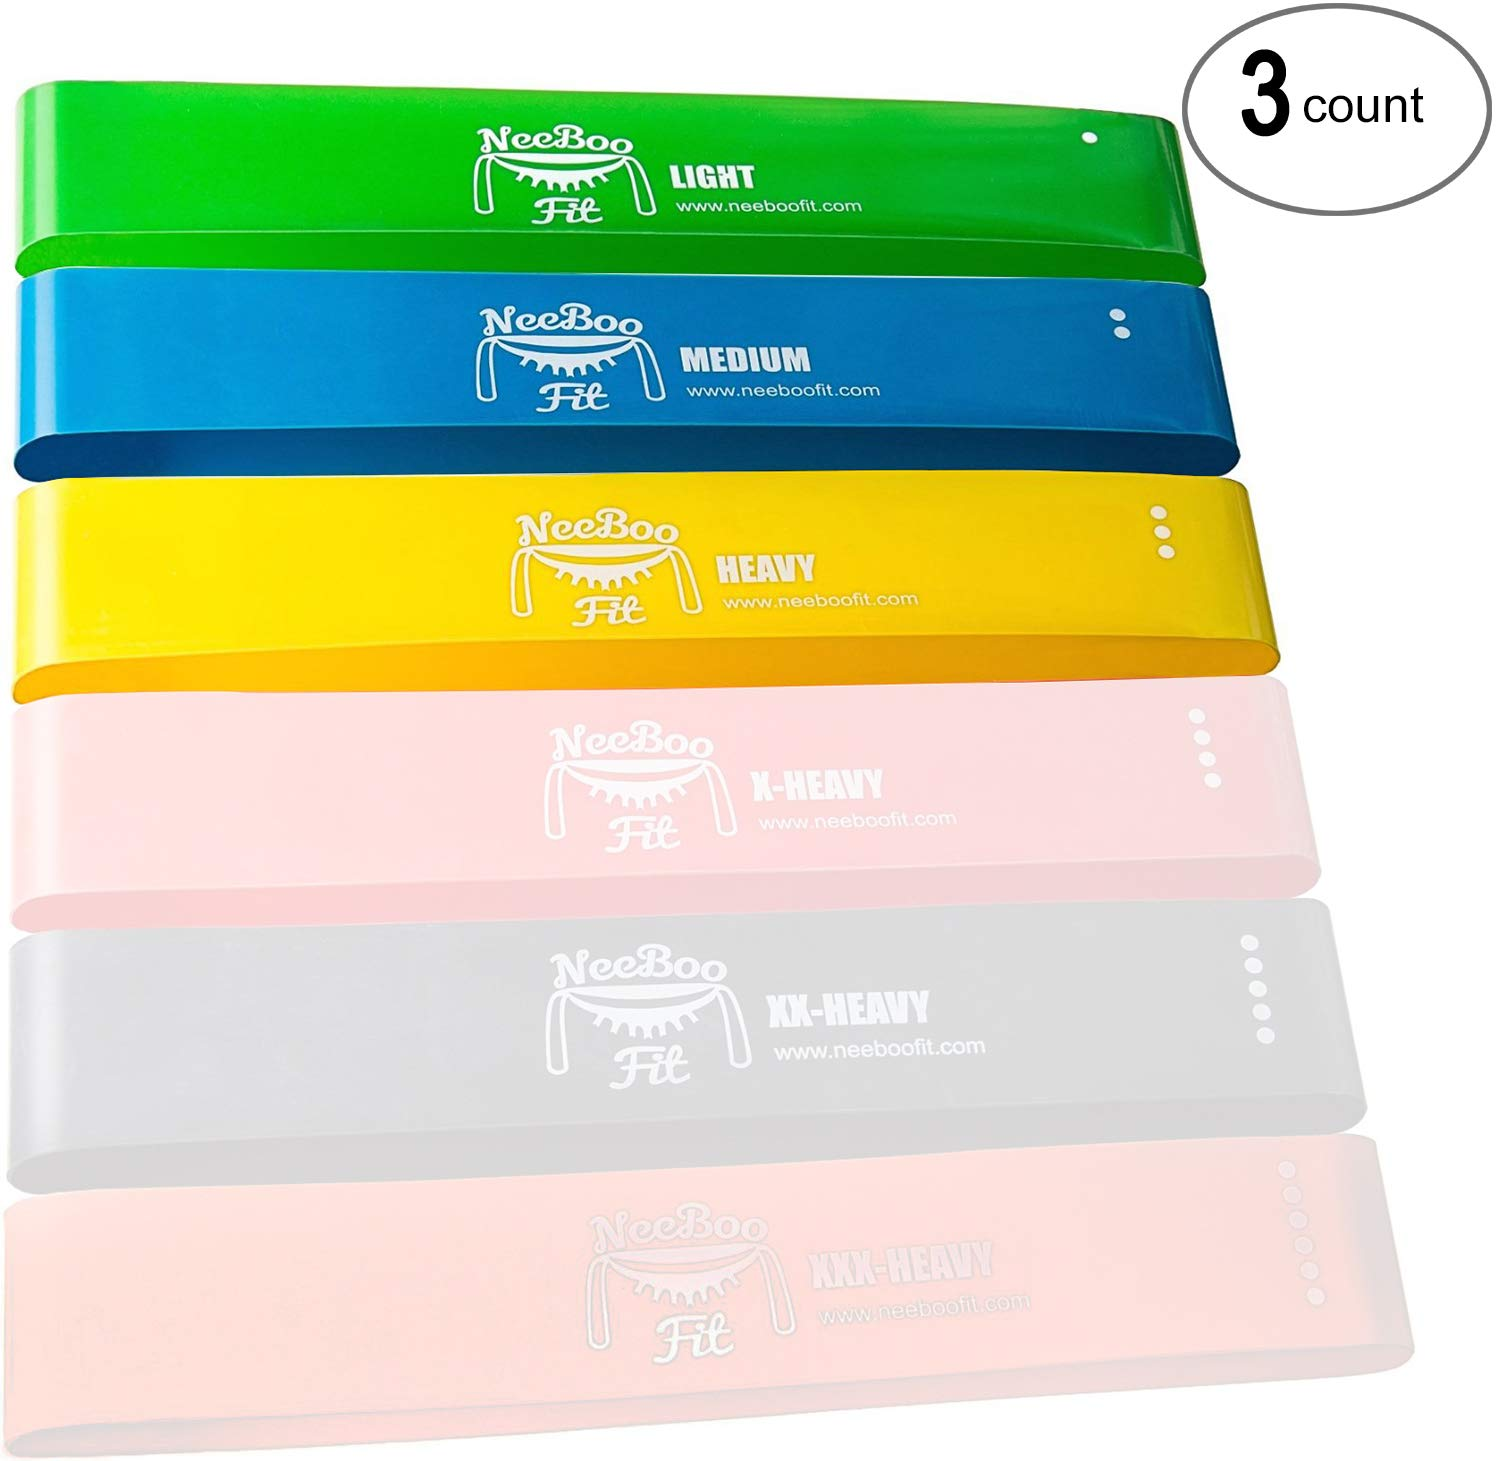 NeeBooFit Resistance Loop Band Set - Best Fitness Exercise Bands for Working Out or Physical Therapy - 12x2 Inches (Lightweight 3 Piece Set)